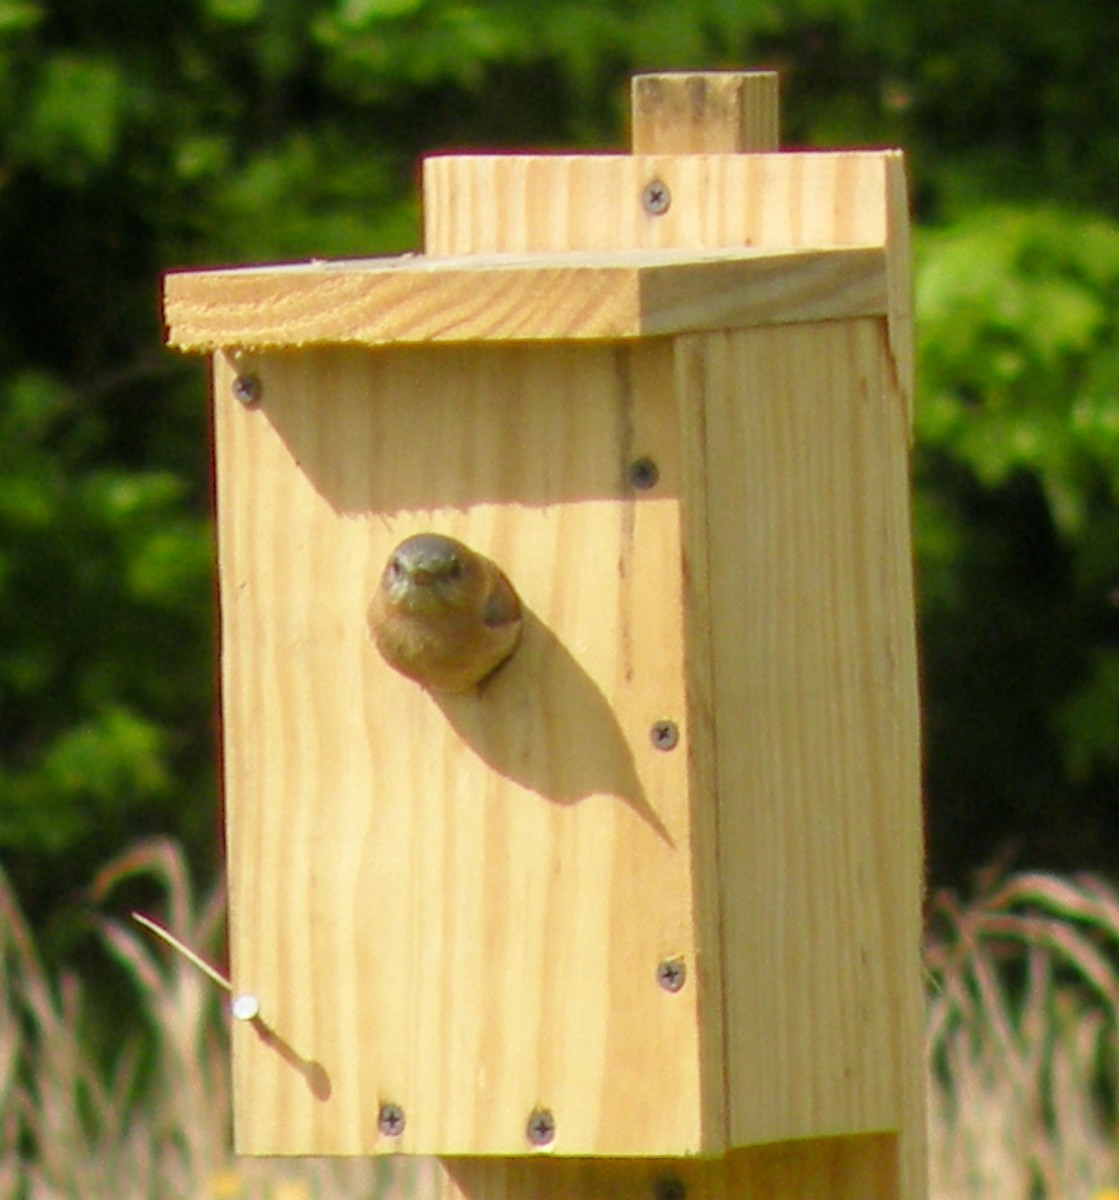 Female bluebird looks out of the box.